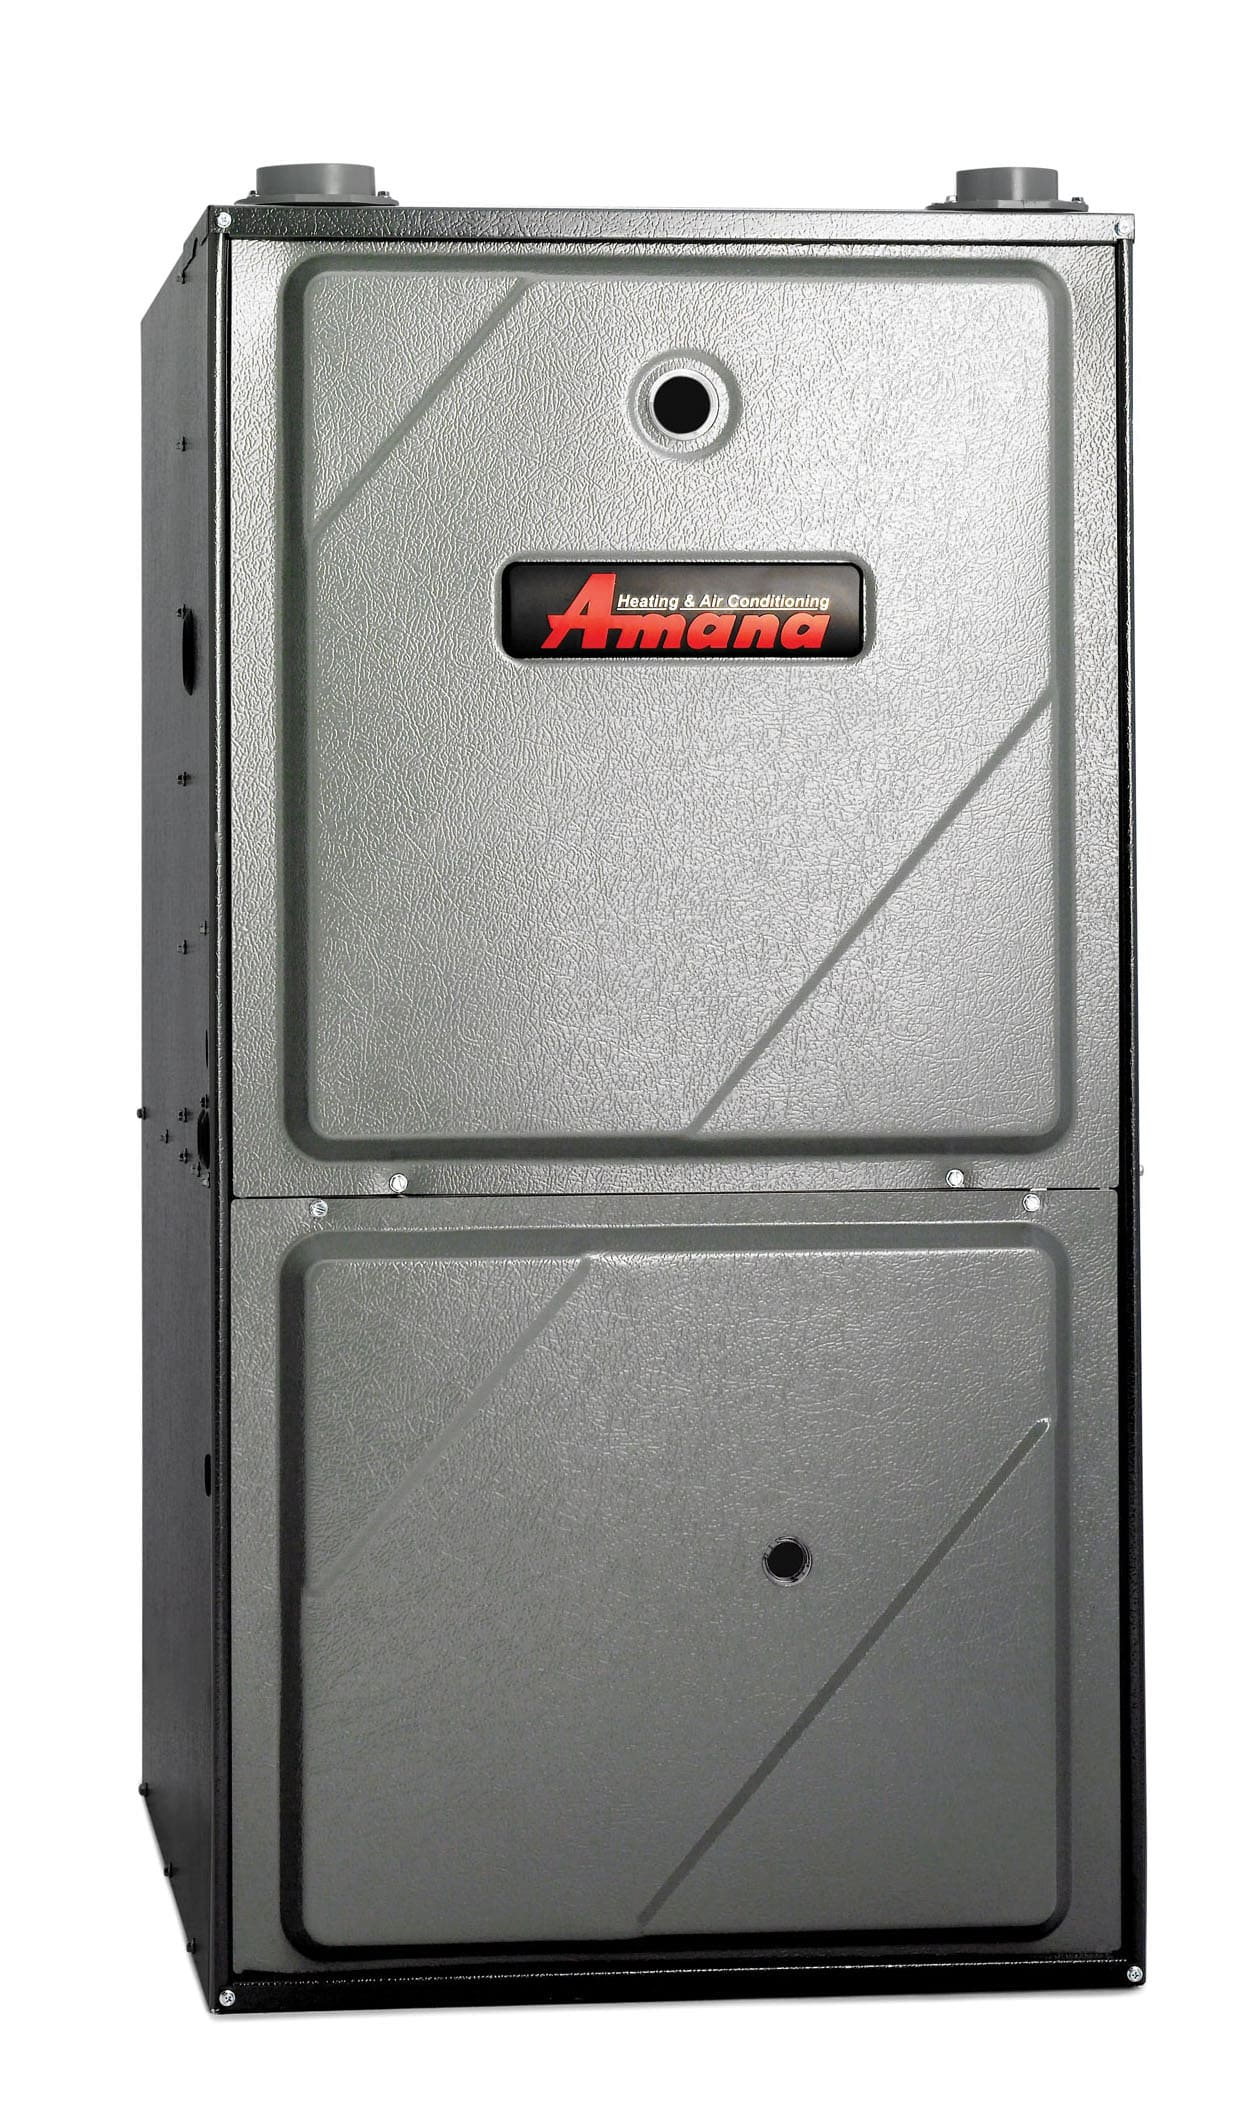 Amana furnace 0% for 9 months